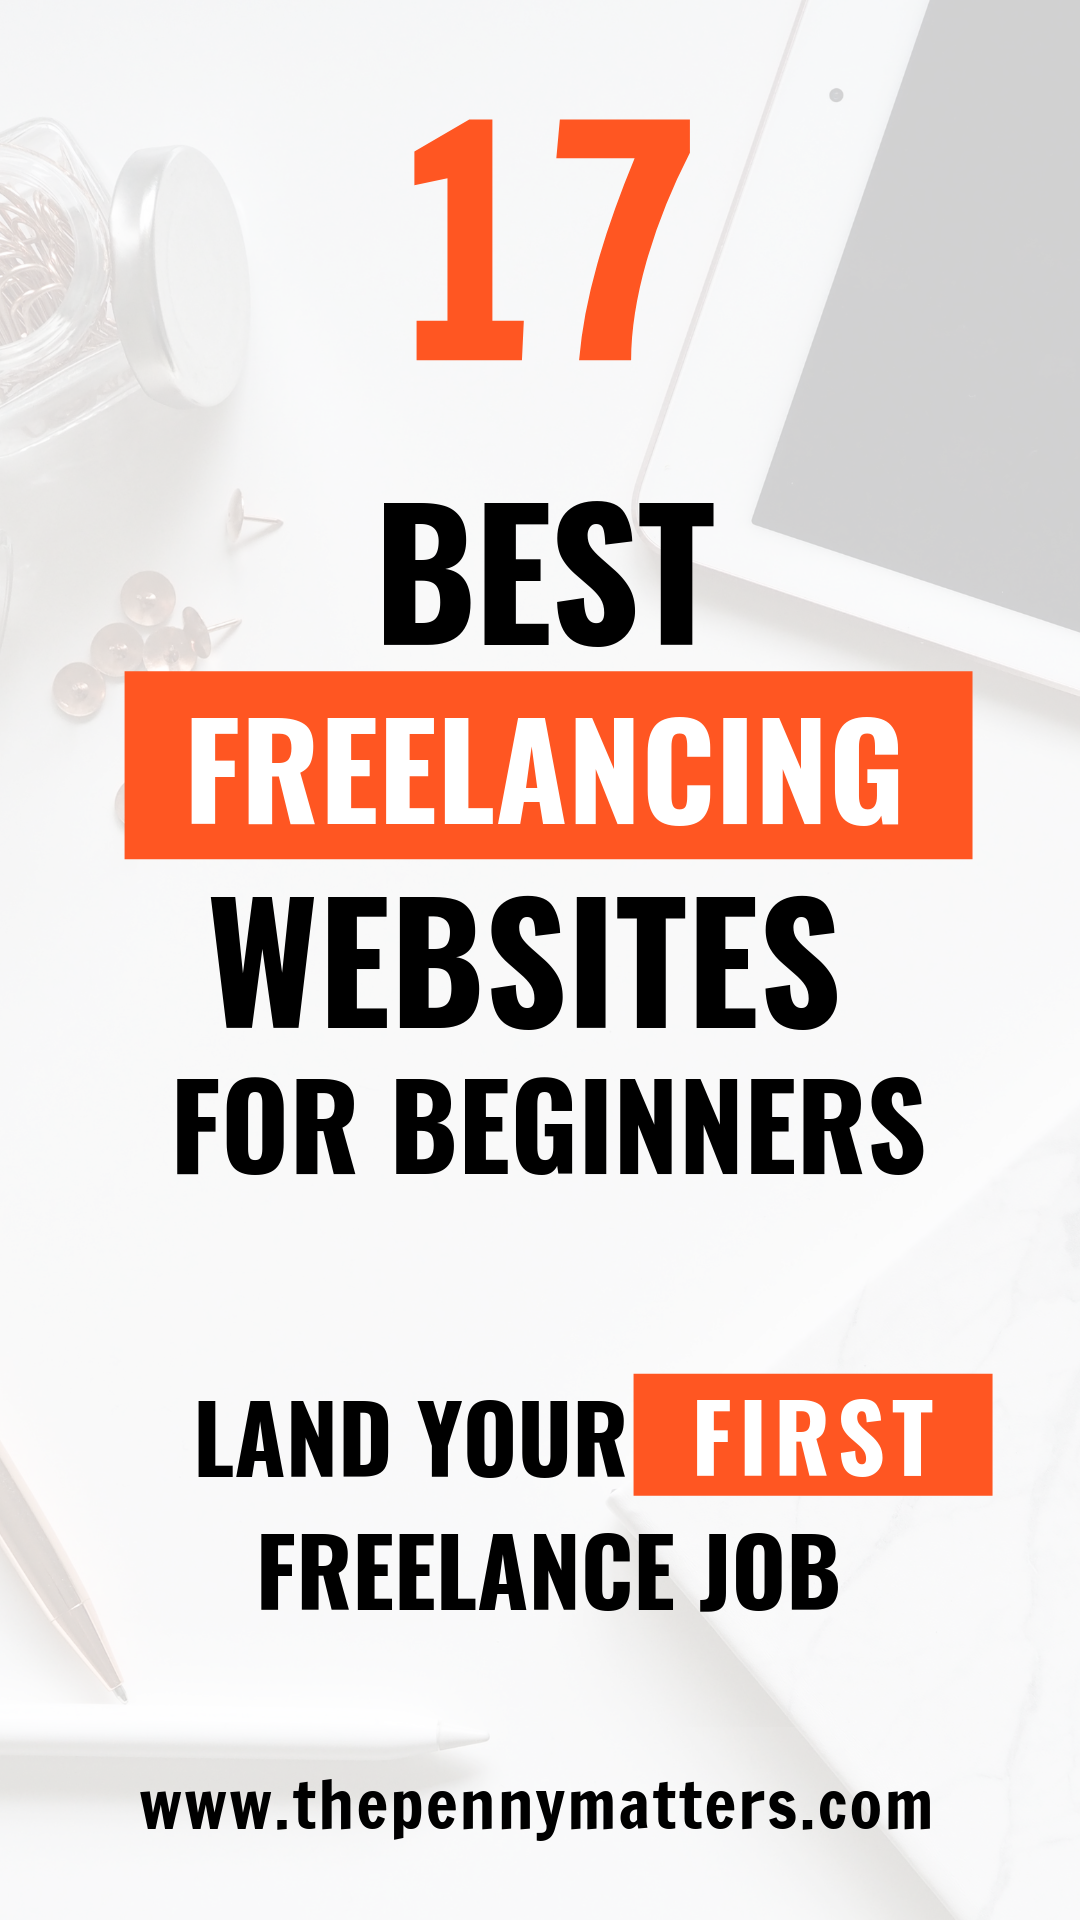 Which Freelance Work Is Best For Beginners